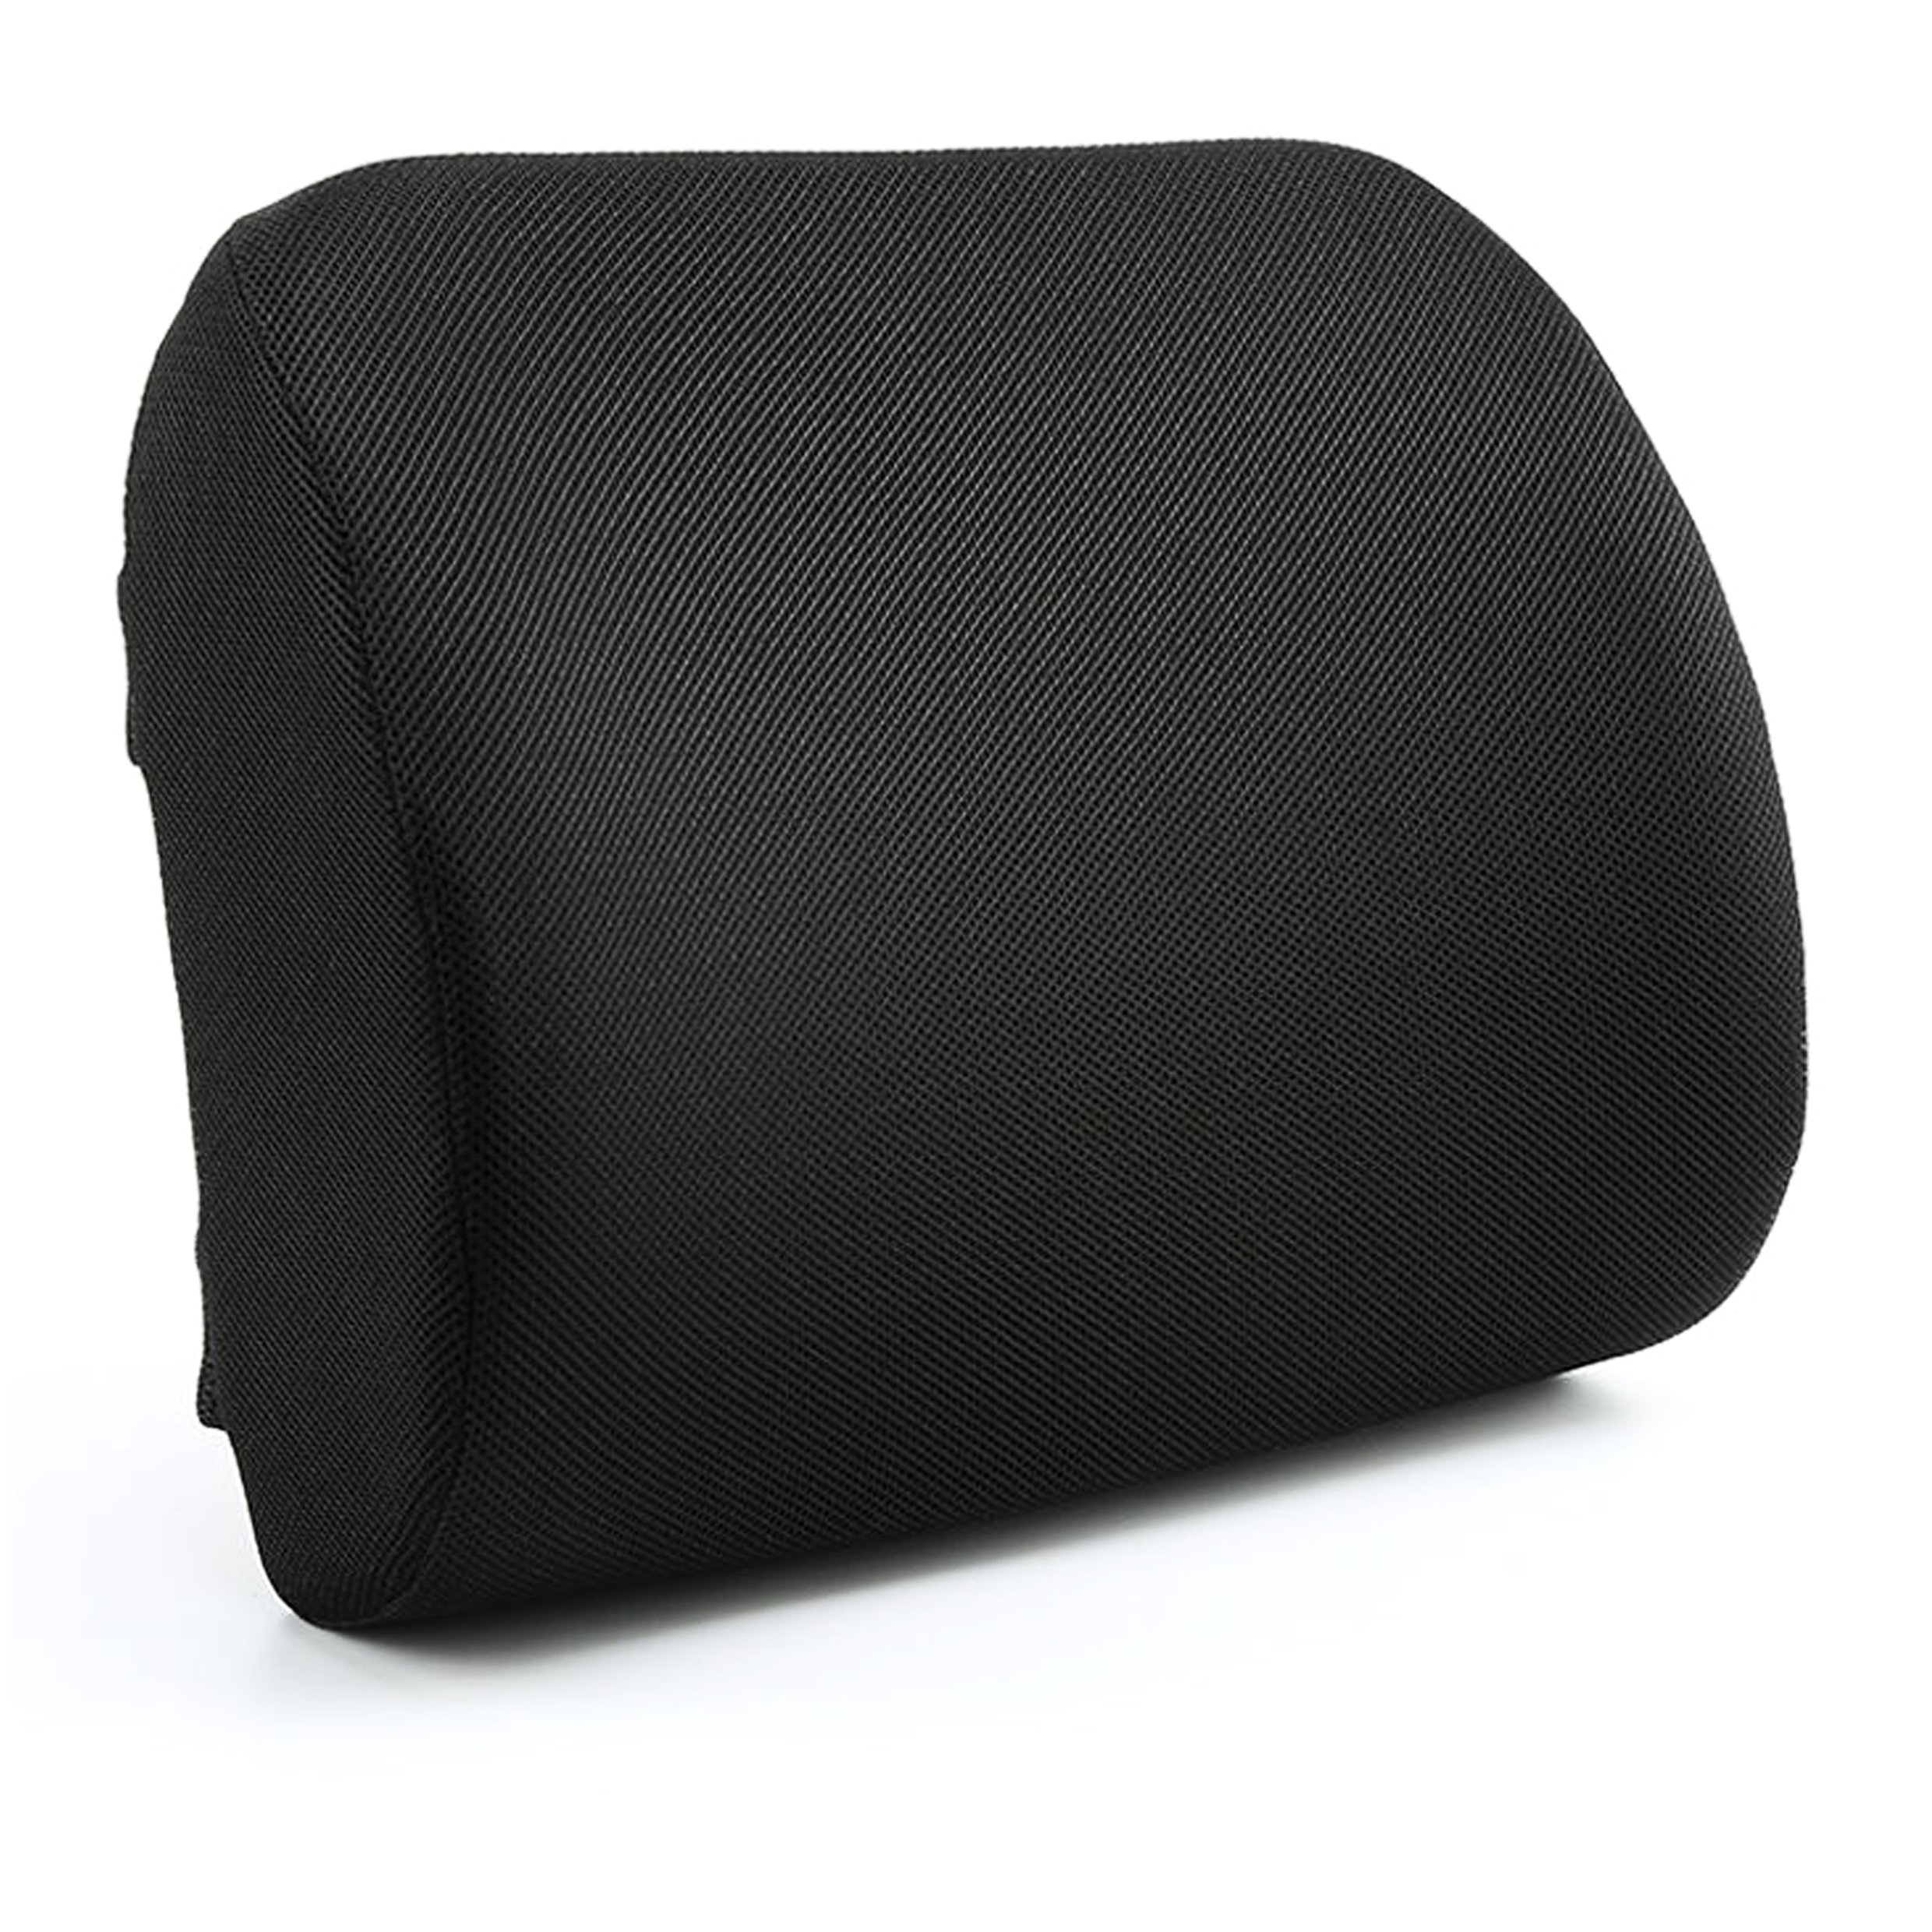 Aerair Lumbar Back Support for Office Chair - Chair Back Support - Relax-A-Bac Lumbar Cushion, Lower Back Pillow With Wooden Support Board and Strap, Black